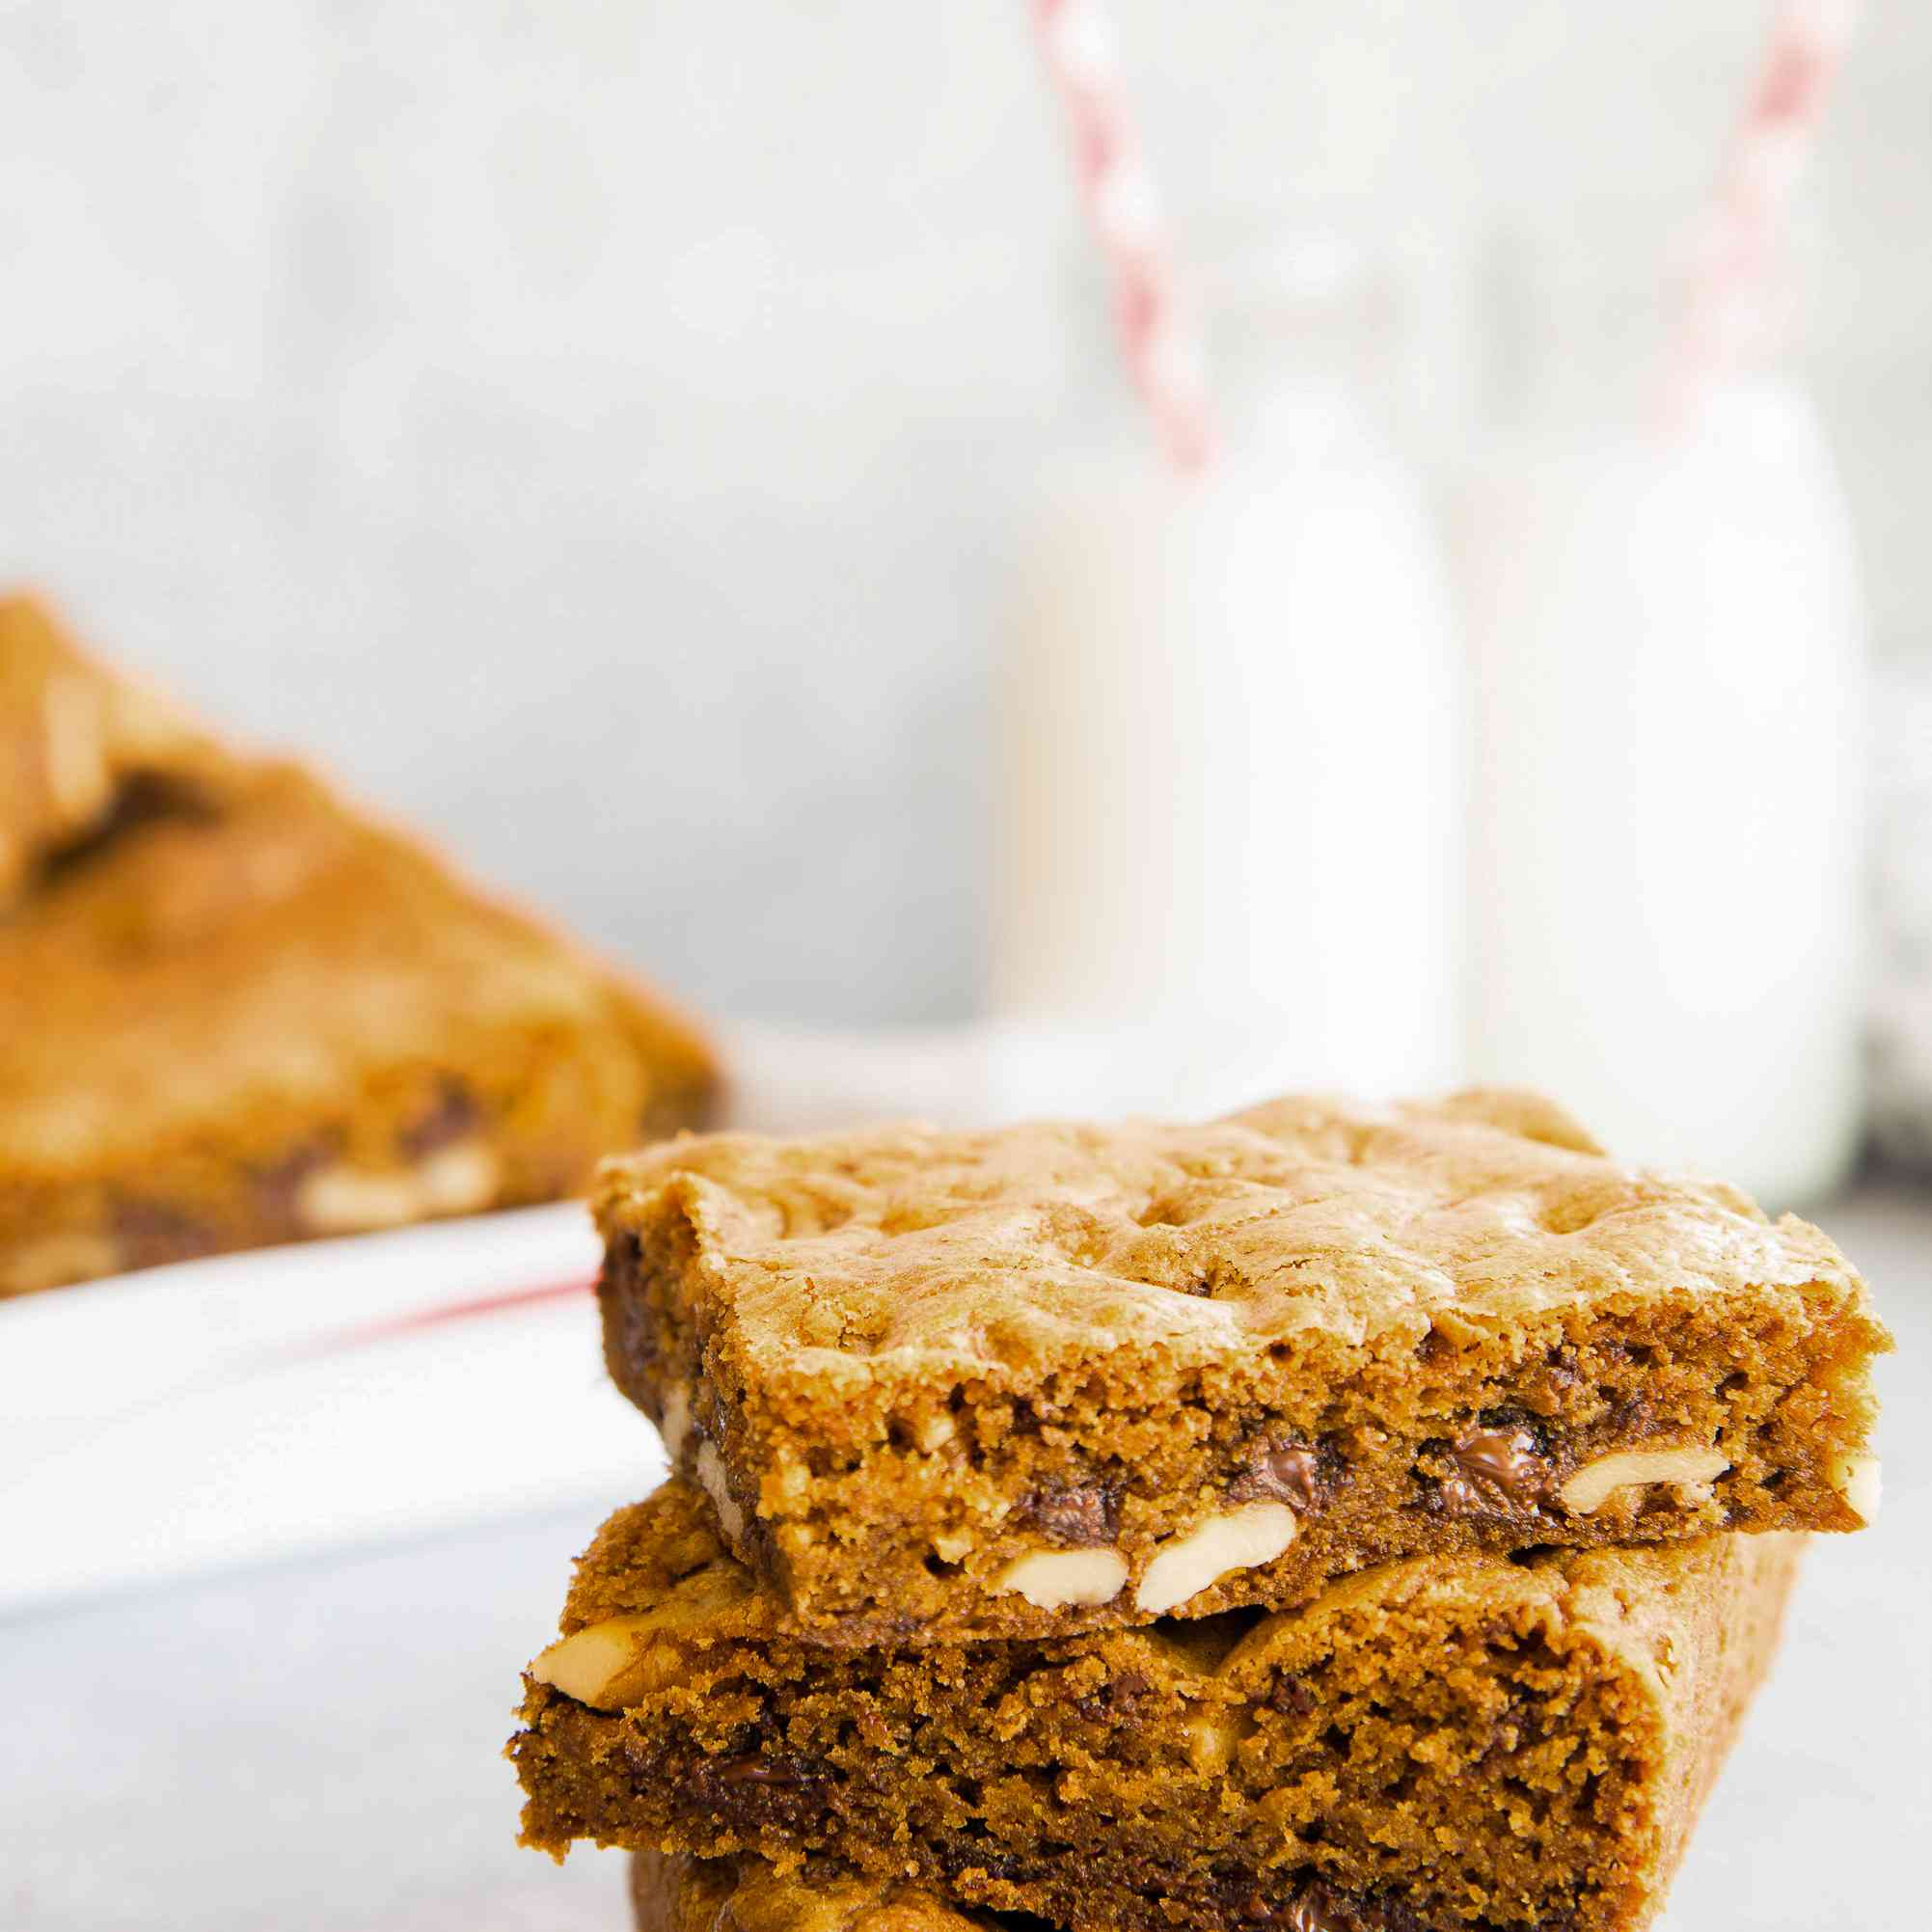 Three chewy chocolate chip cookie bars on a napkin with glasses of milk behind it.